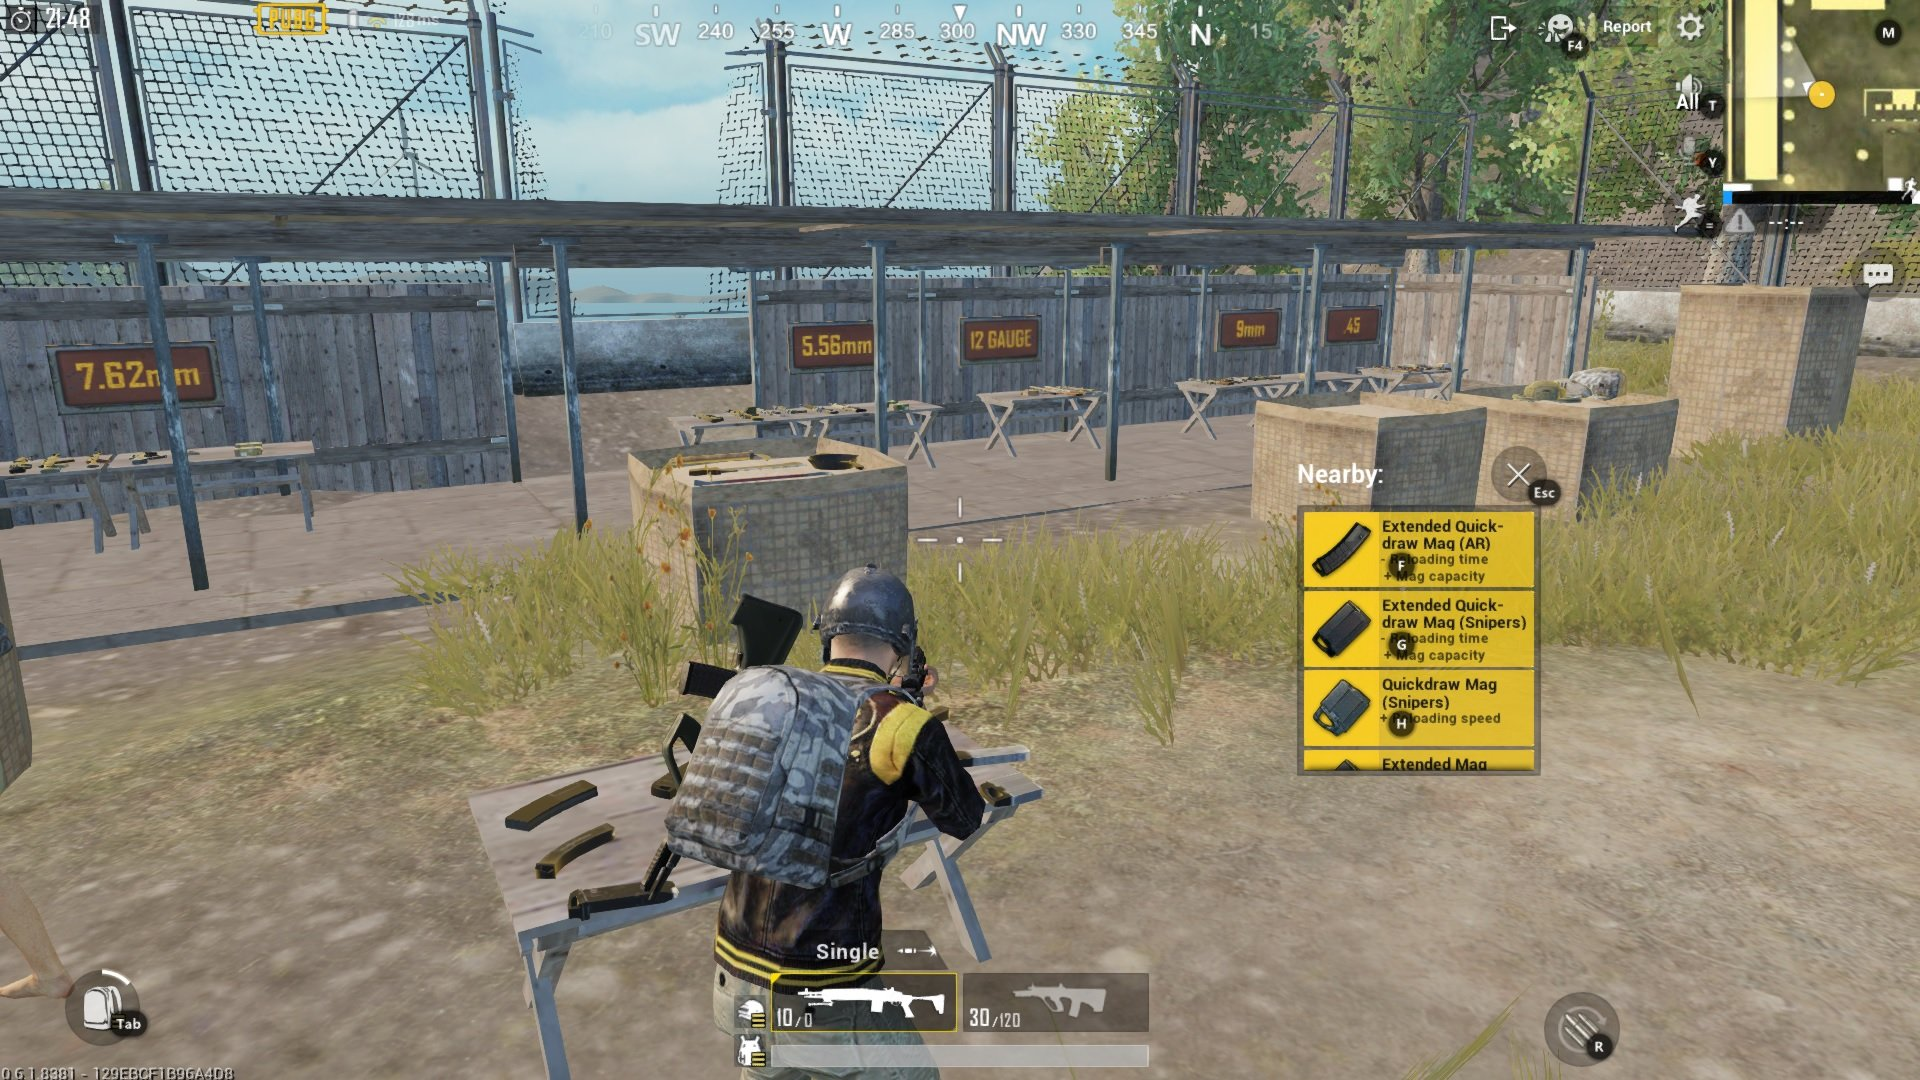 How To Play Pubg Mobile On Windows 10: How To Play Pubg Mobile On